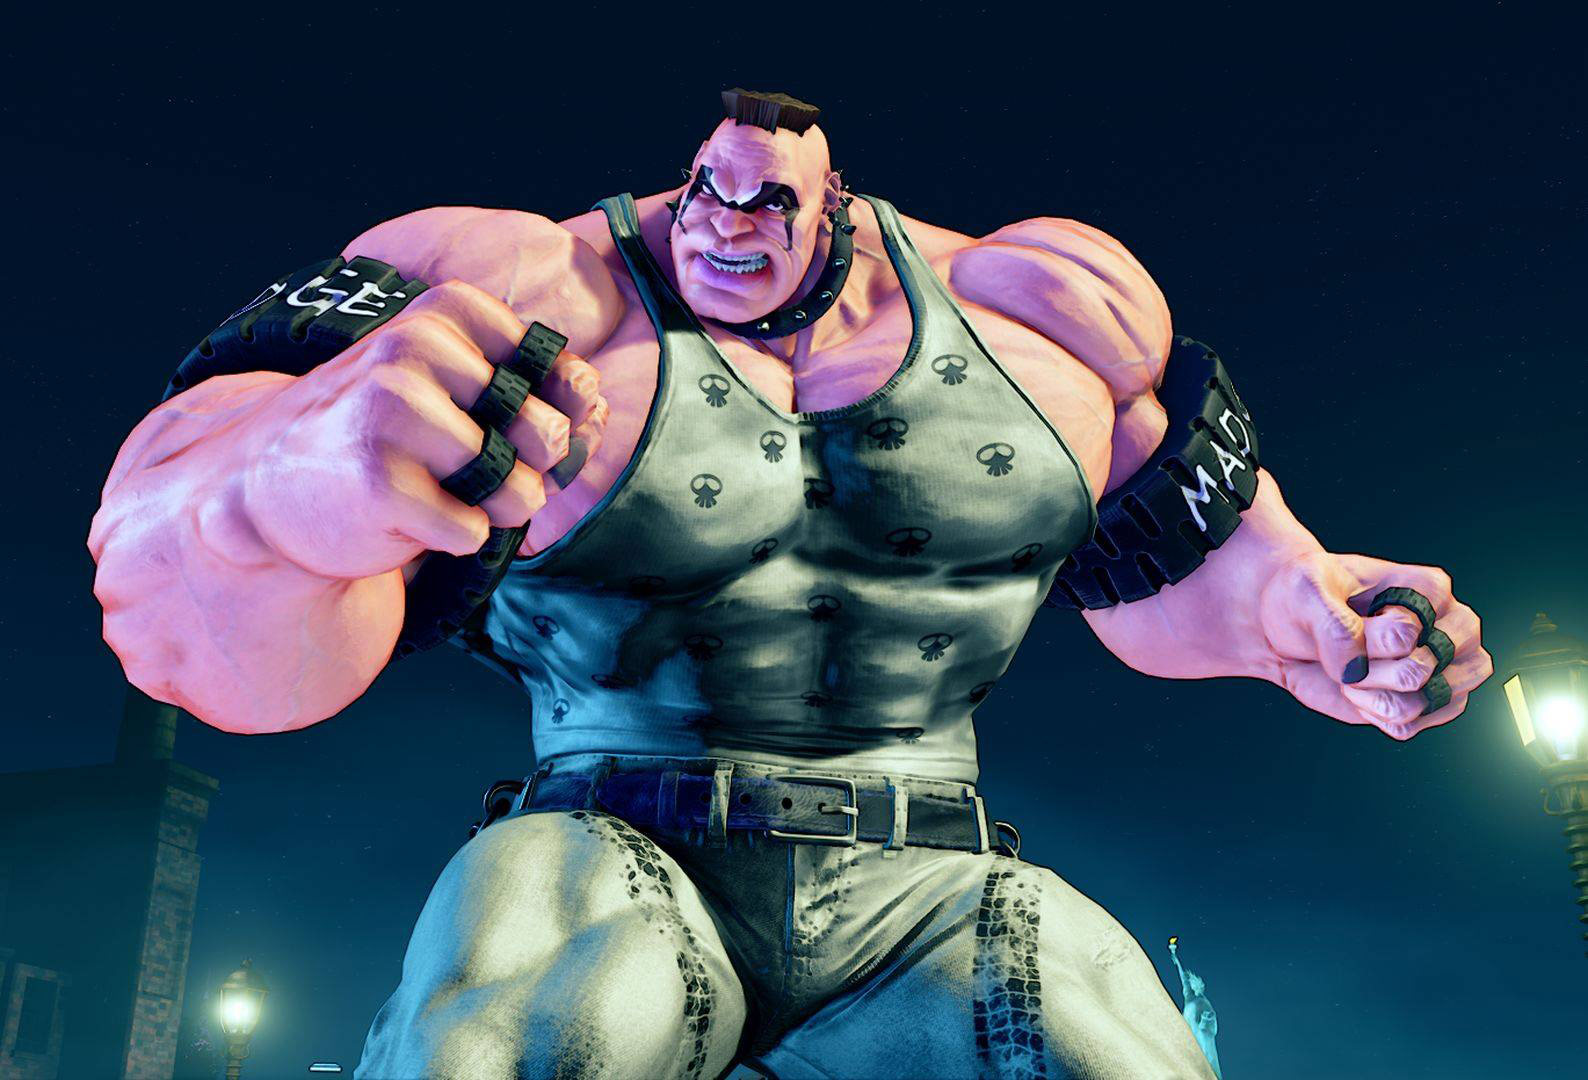 Abigail Street Fighter 5 9 out of 13 image gallery